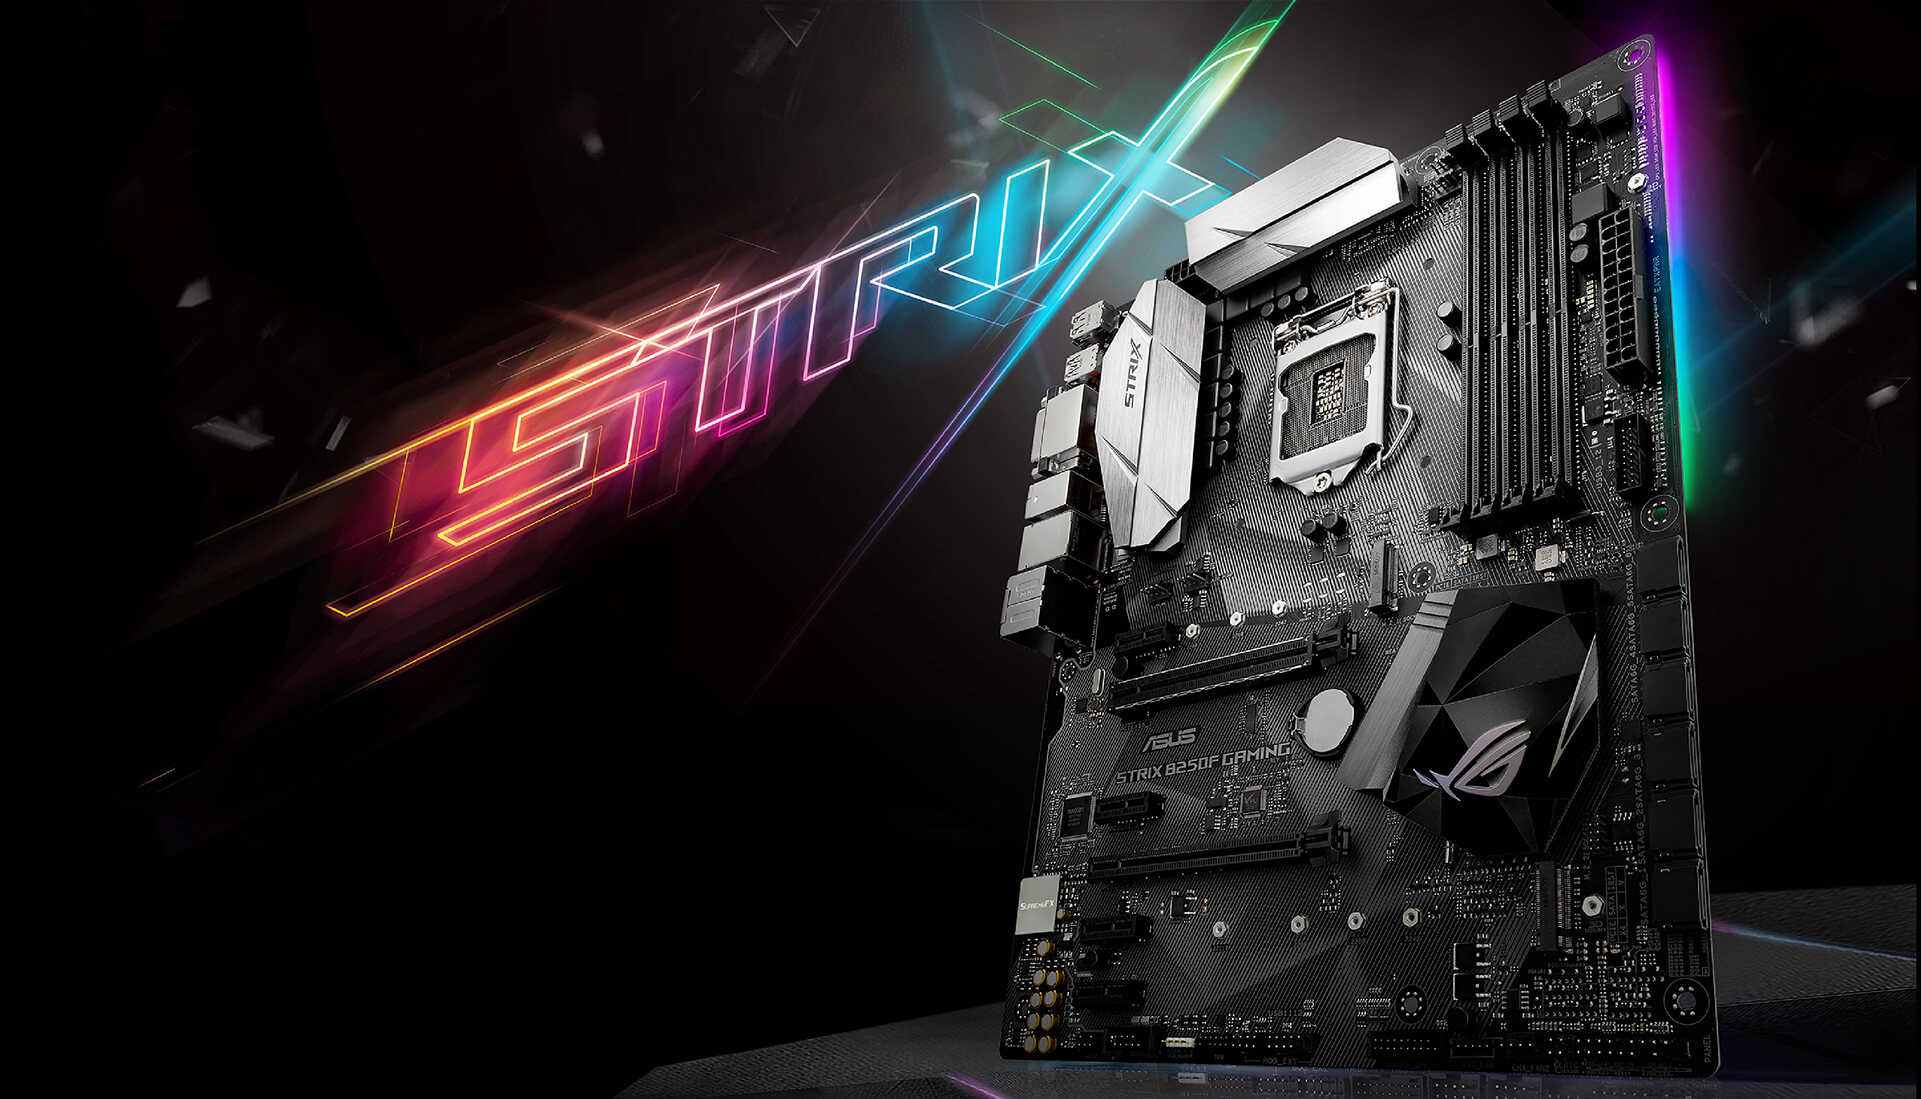 Asus STRIX Z270H GAMING (Chipset Intel Z270/ Socket LGA1151/ VGA onboard)